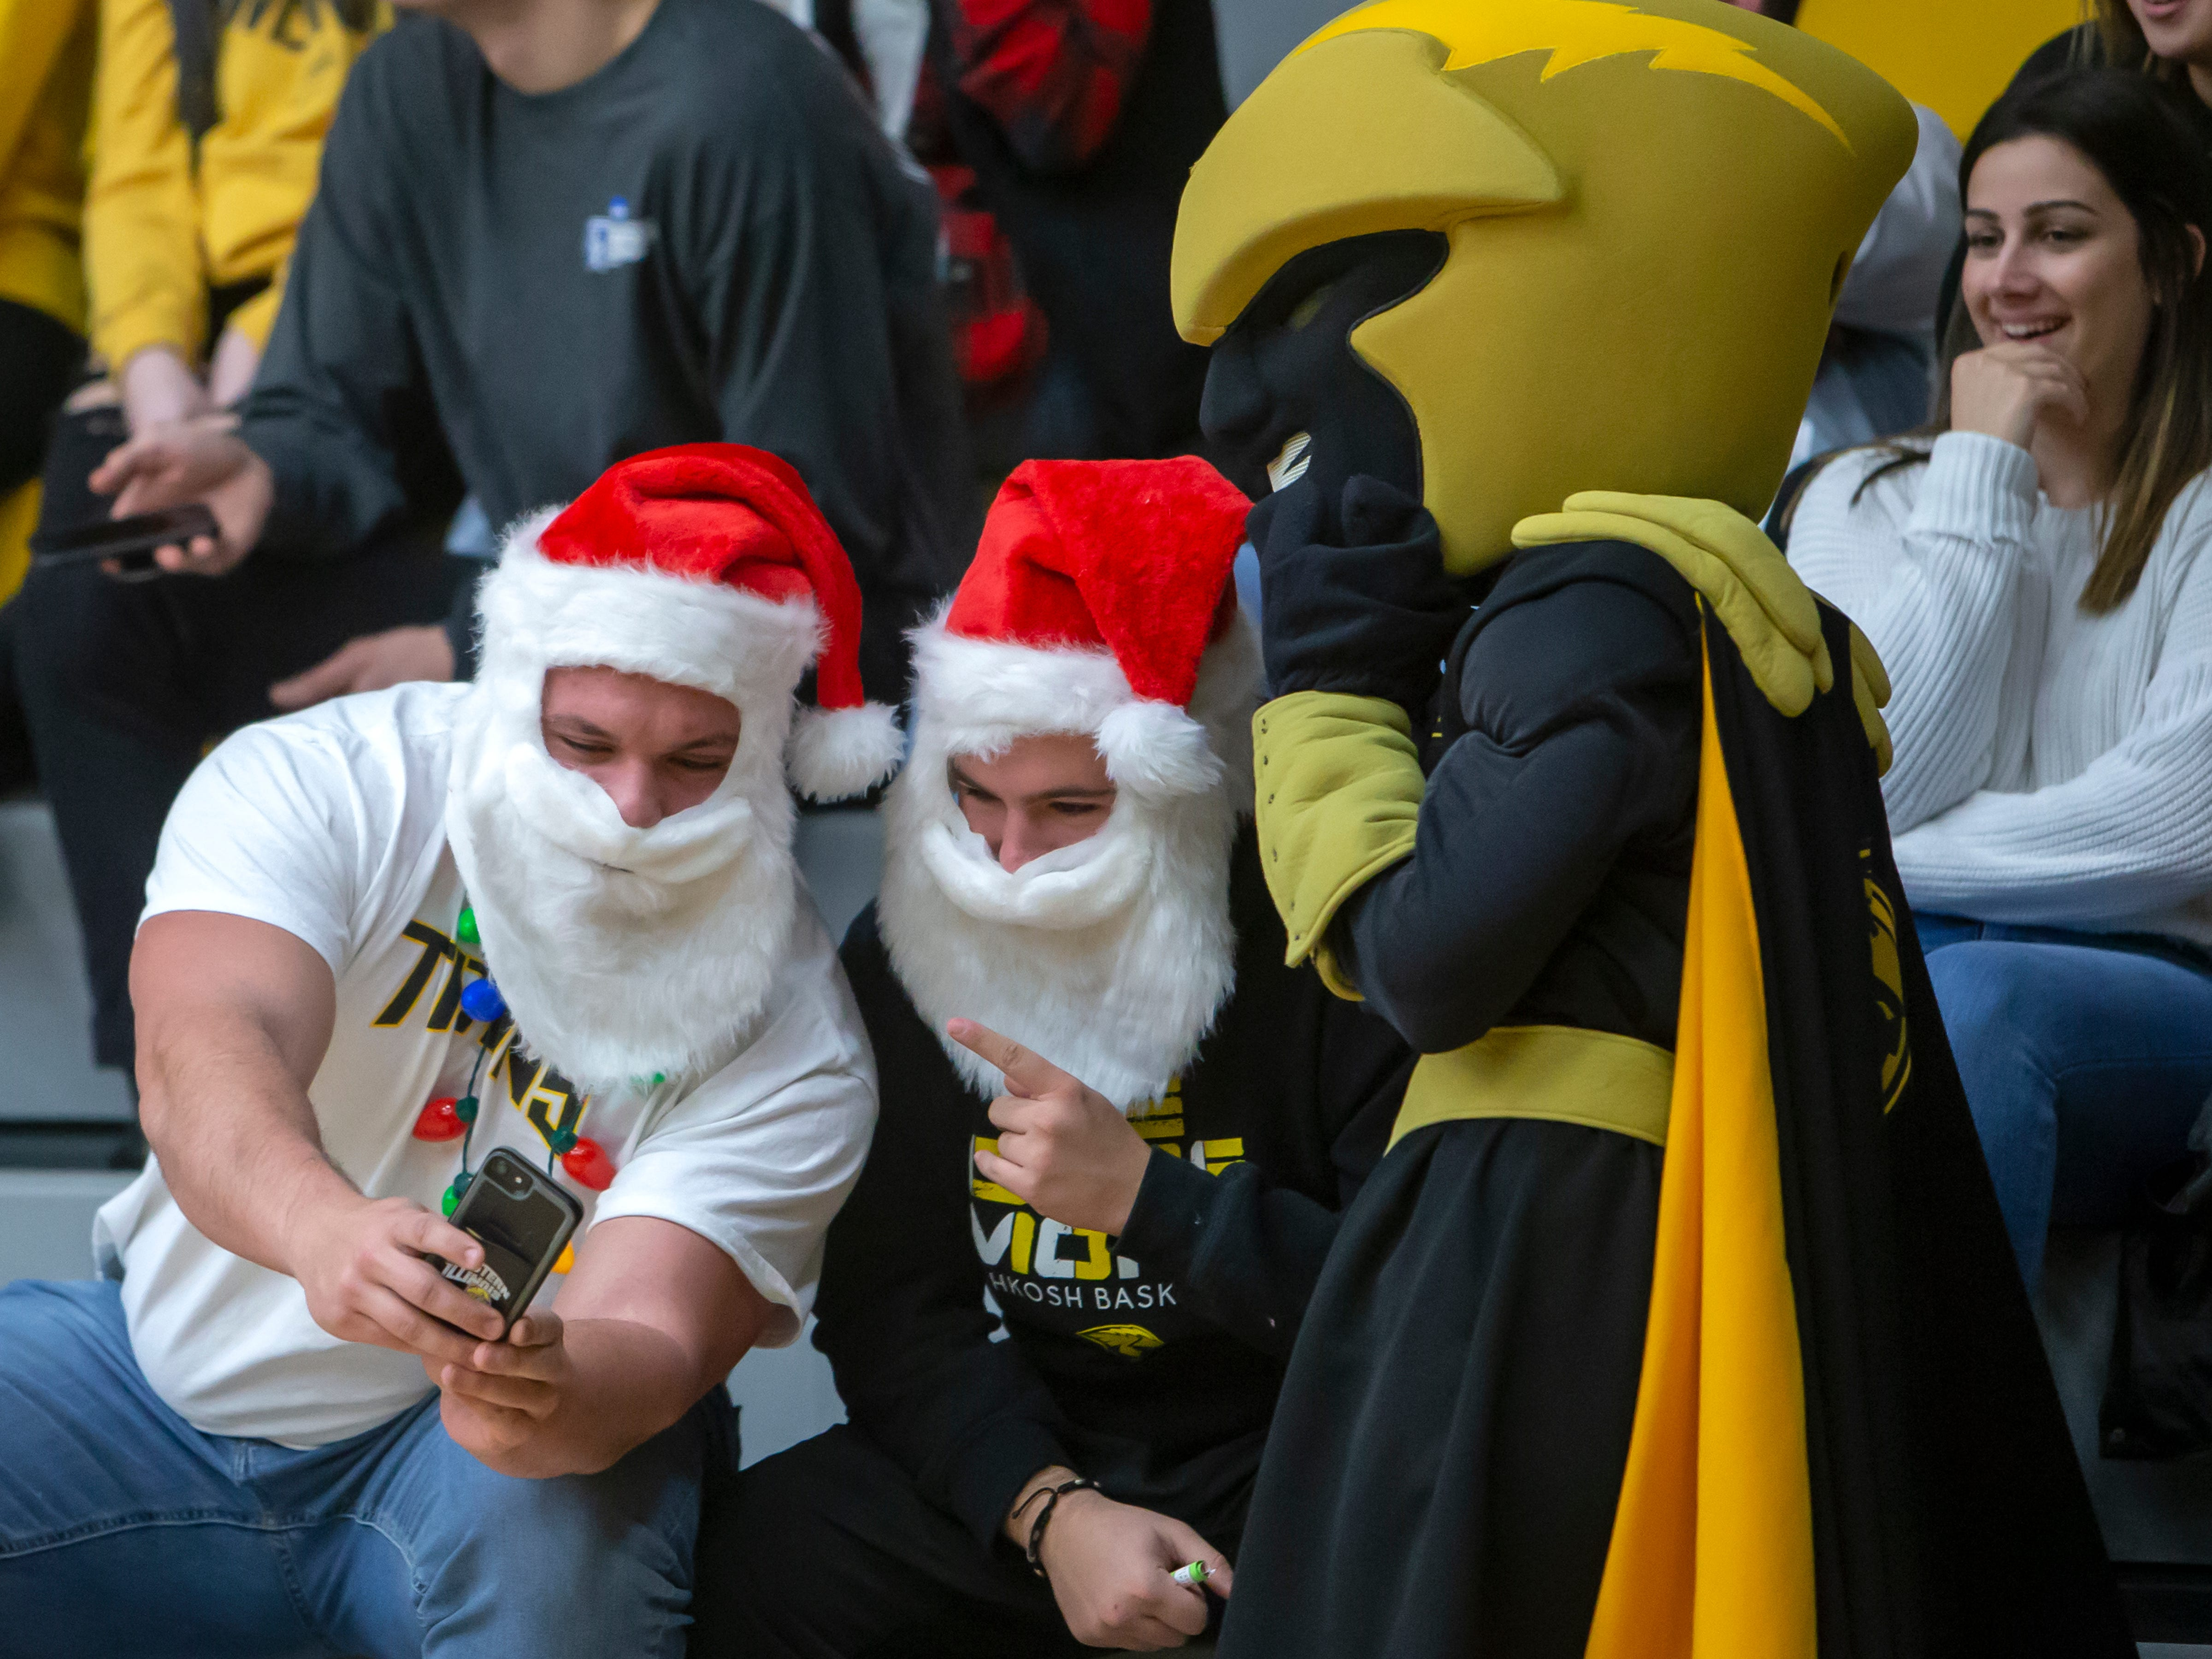 Basketball spectators wear Santa hats during the game at the Kolf Sports Center on Saturday, December 8, 2018.